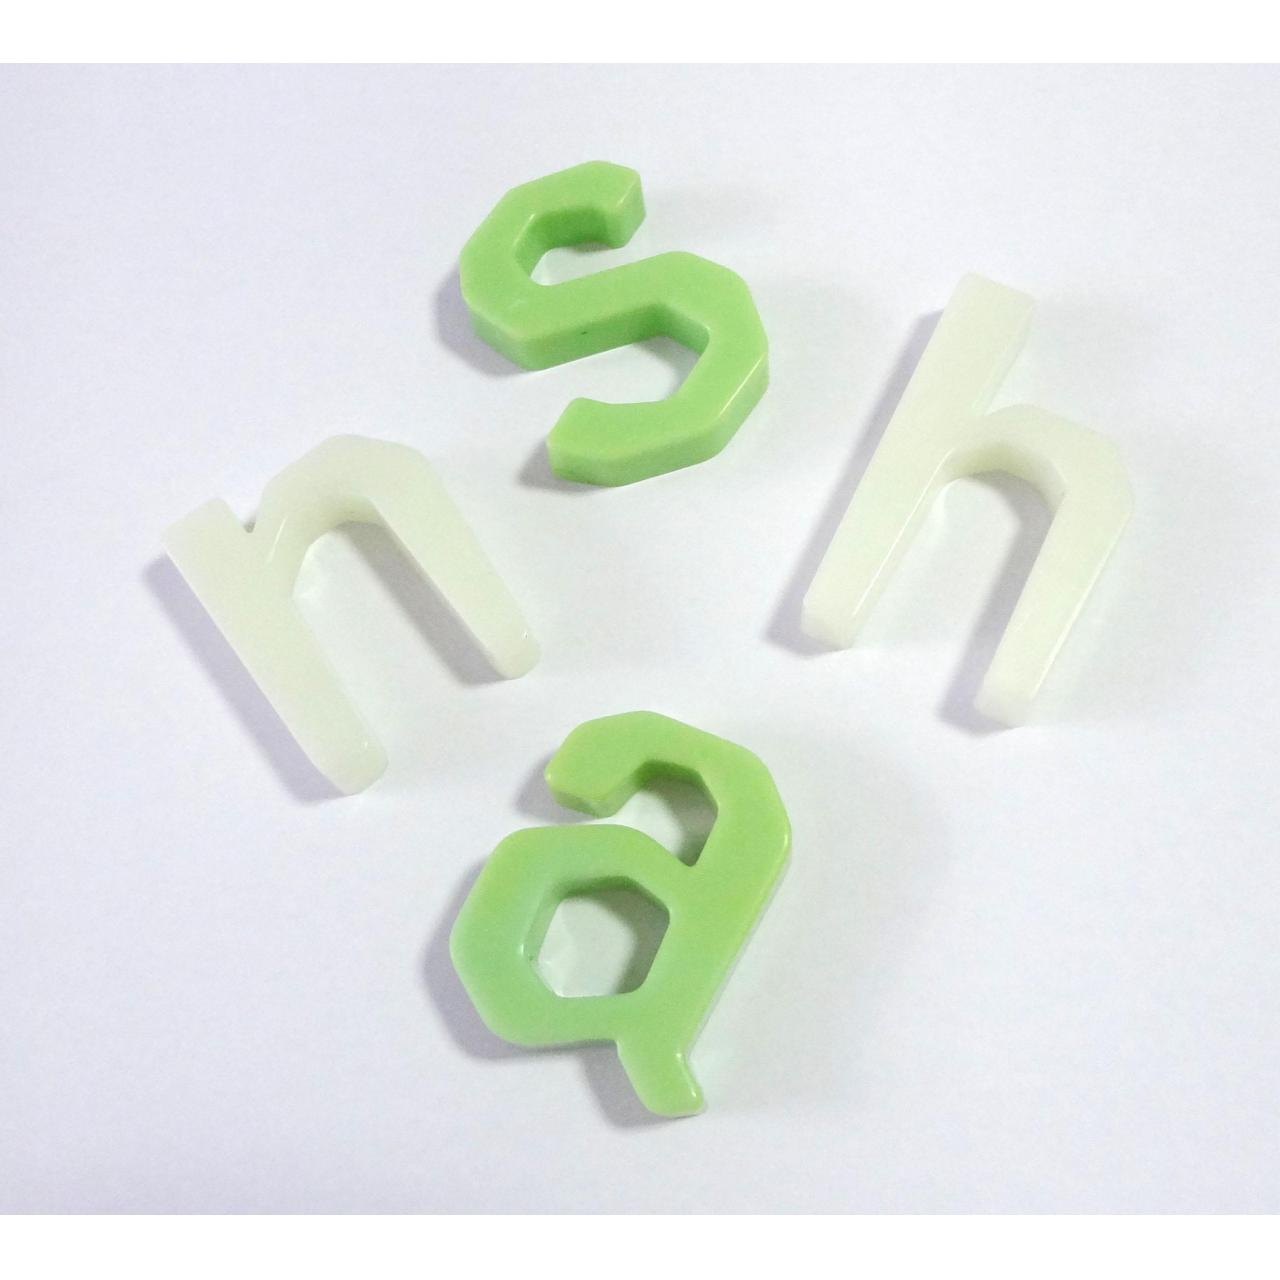 Wholesale China plastic injection molding parts with Good Quality and Better Price from china suppliers